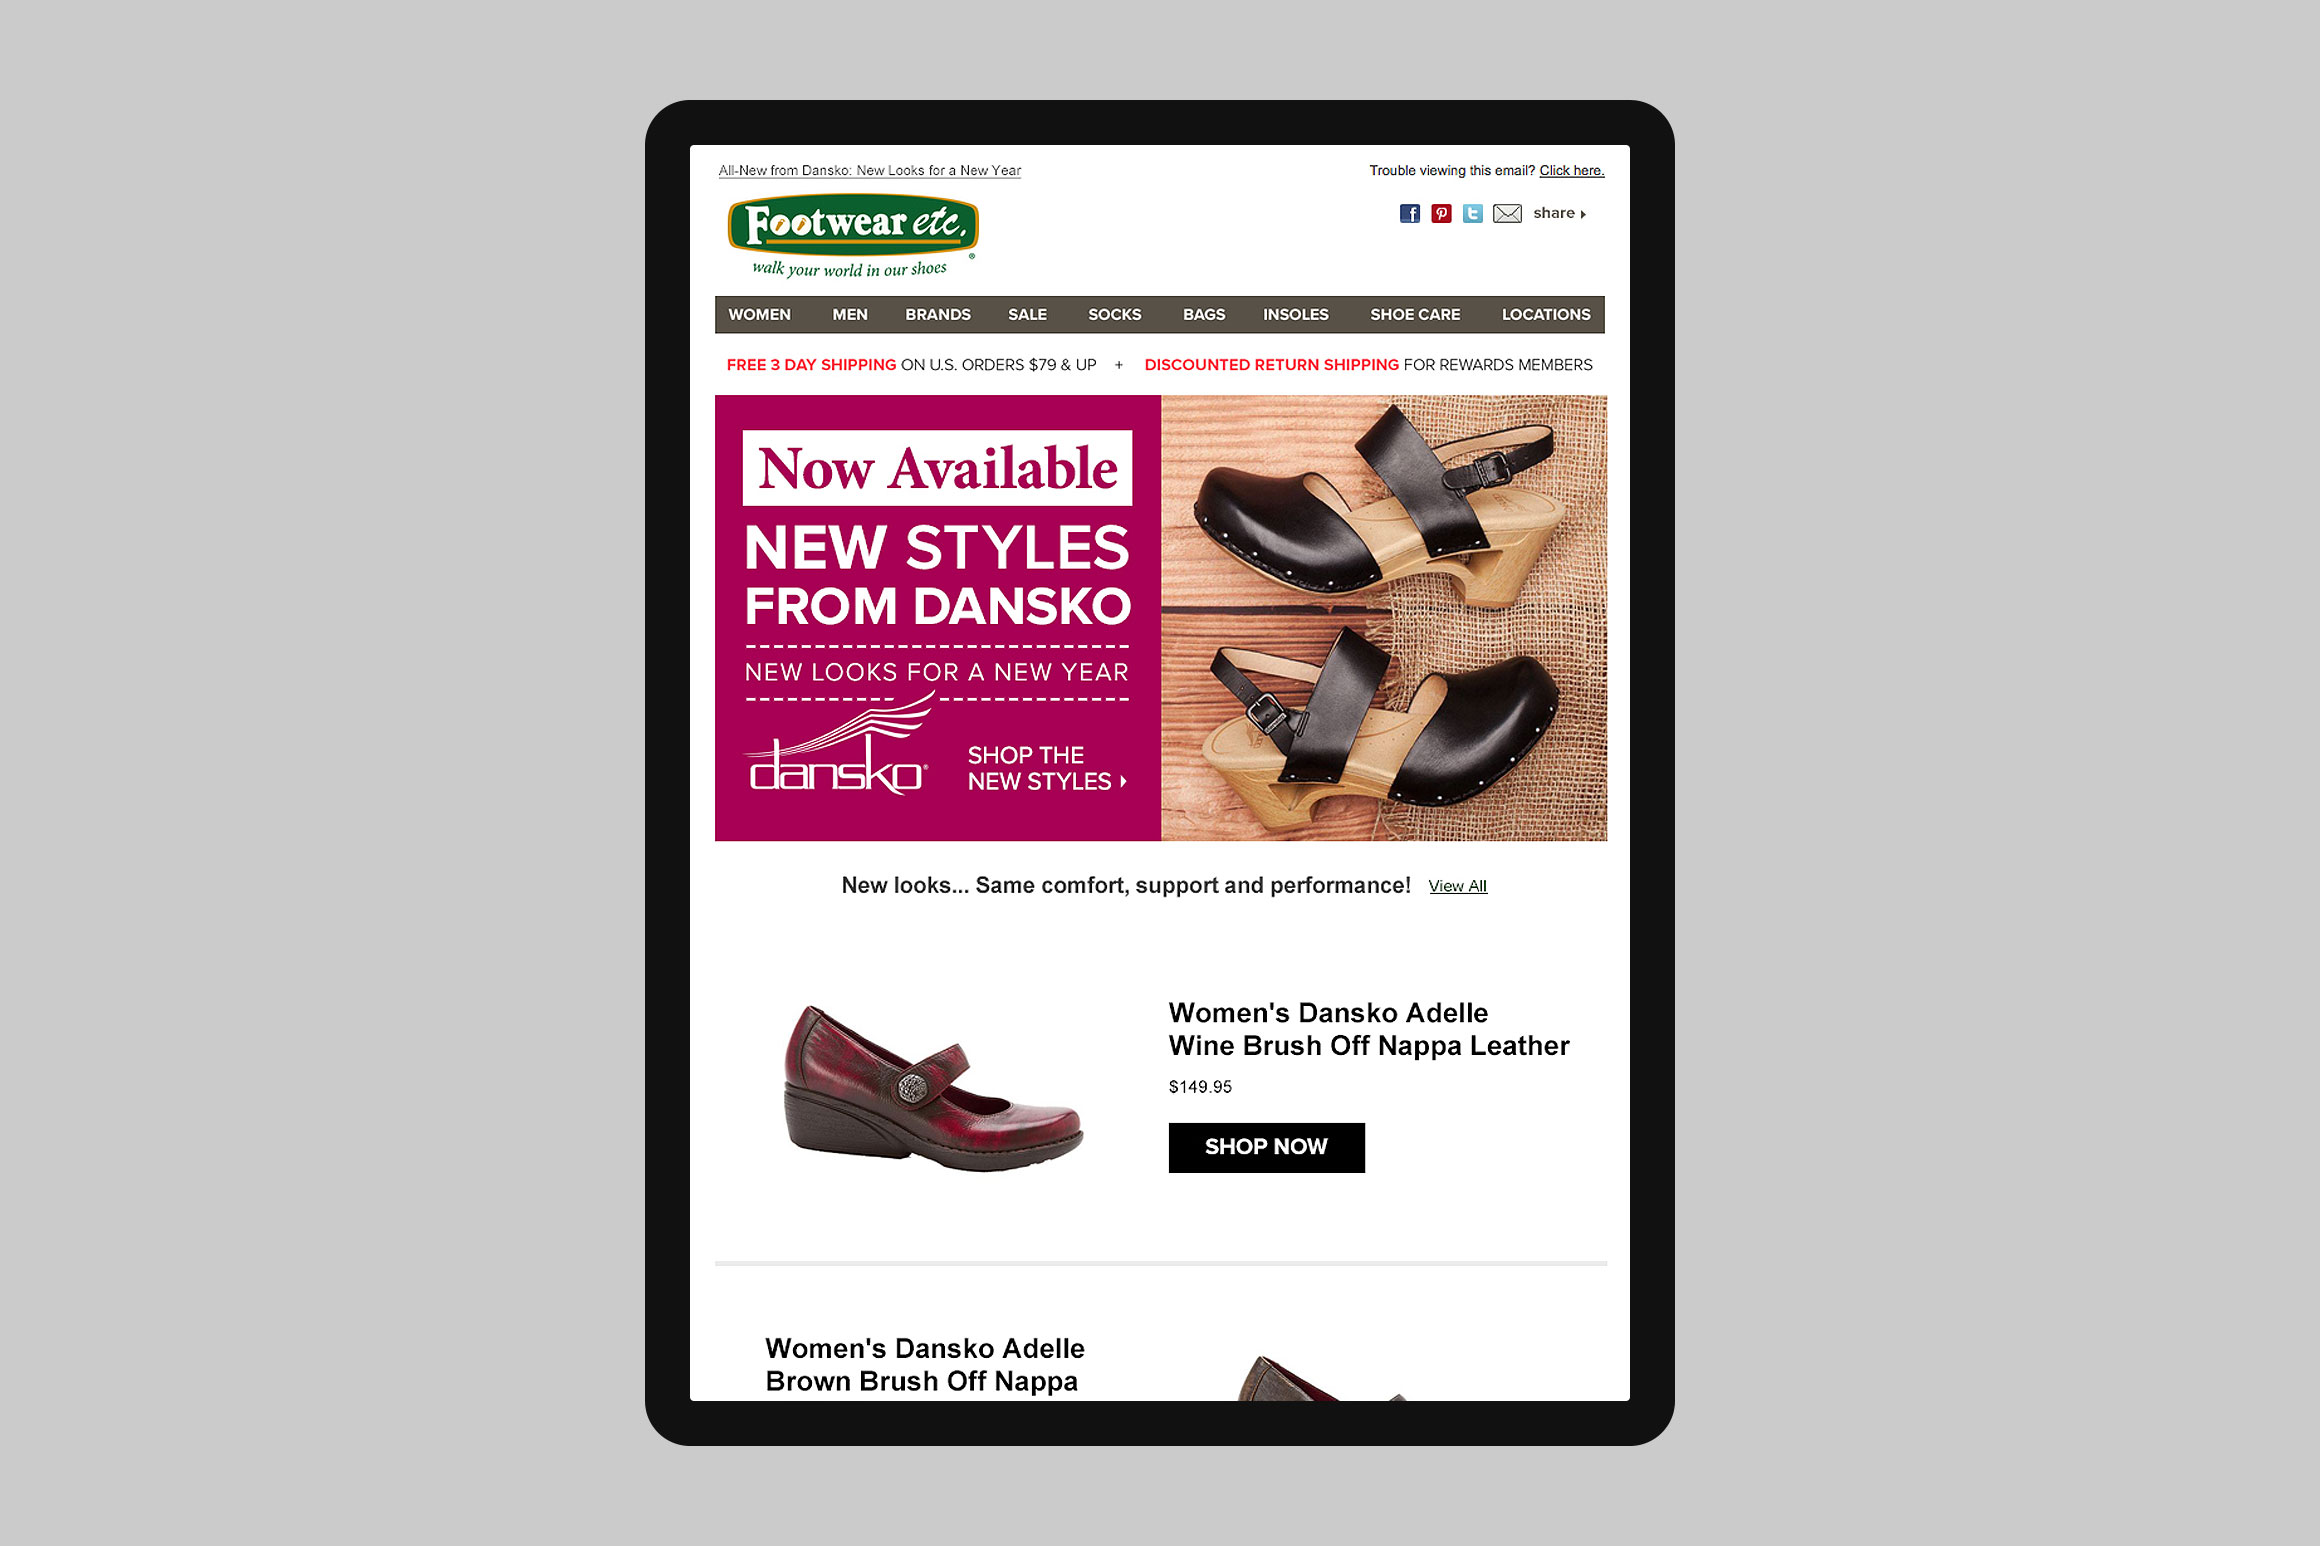 Footwear etc. Email Template #6